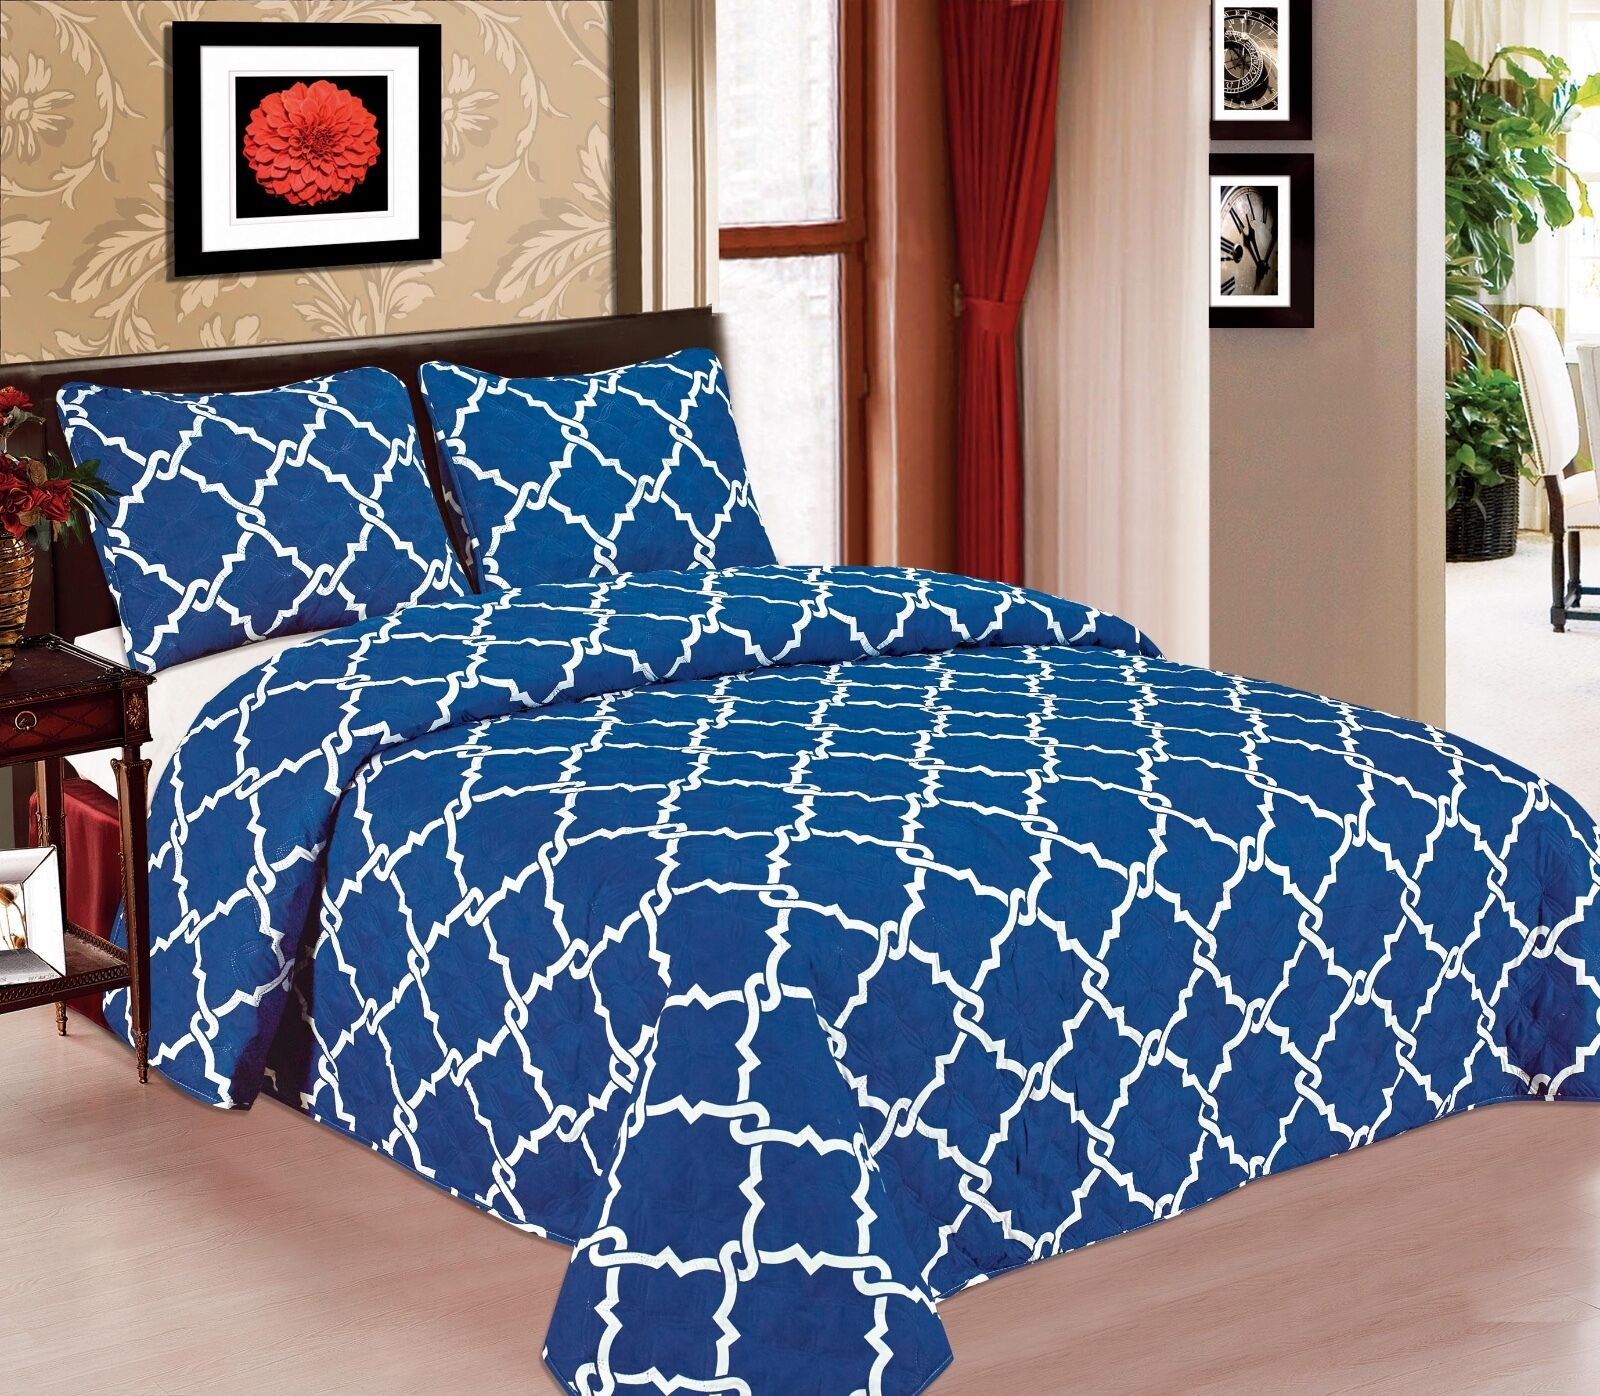 Galaxy 3-Piece Quilted Bedspread Soft Microfiber Bedding Set- Royal Blue